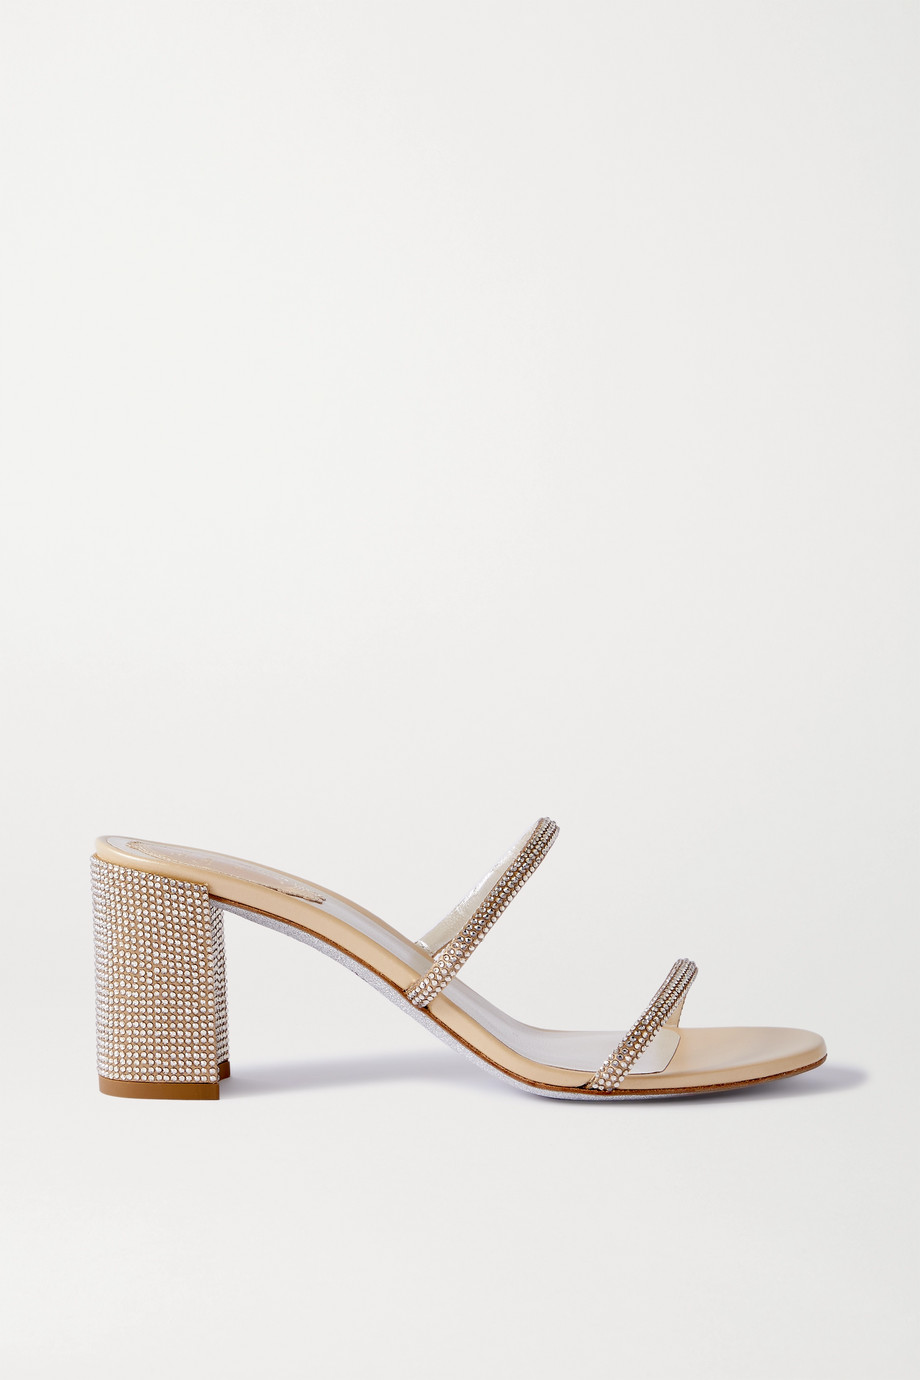 RENÉ CAOVILLA Bessie crystal-embellished metallic leather sandals